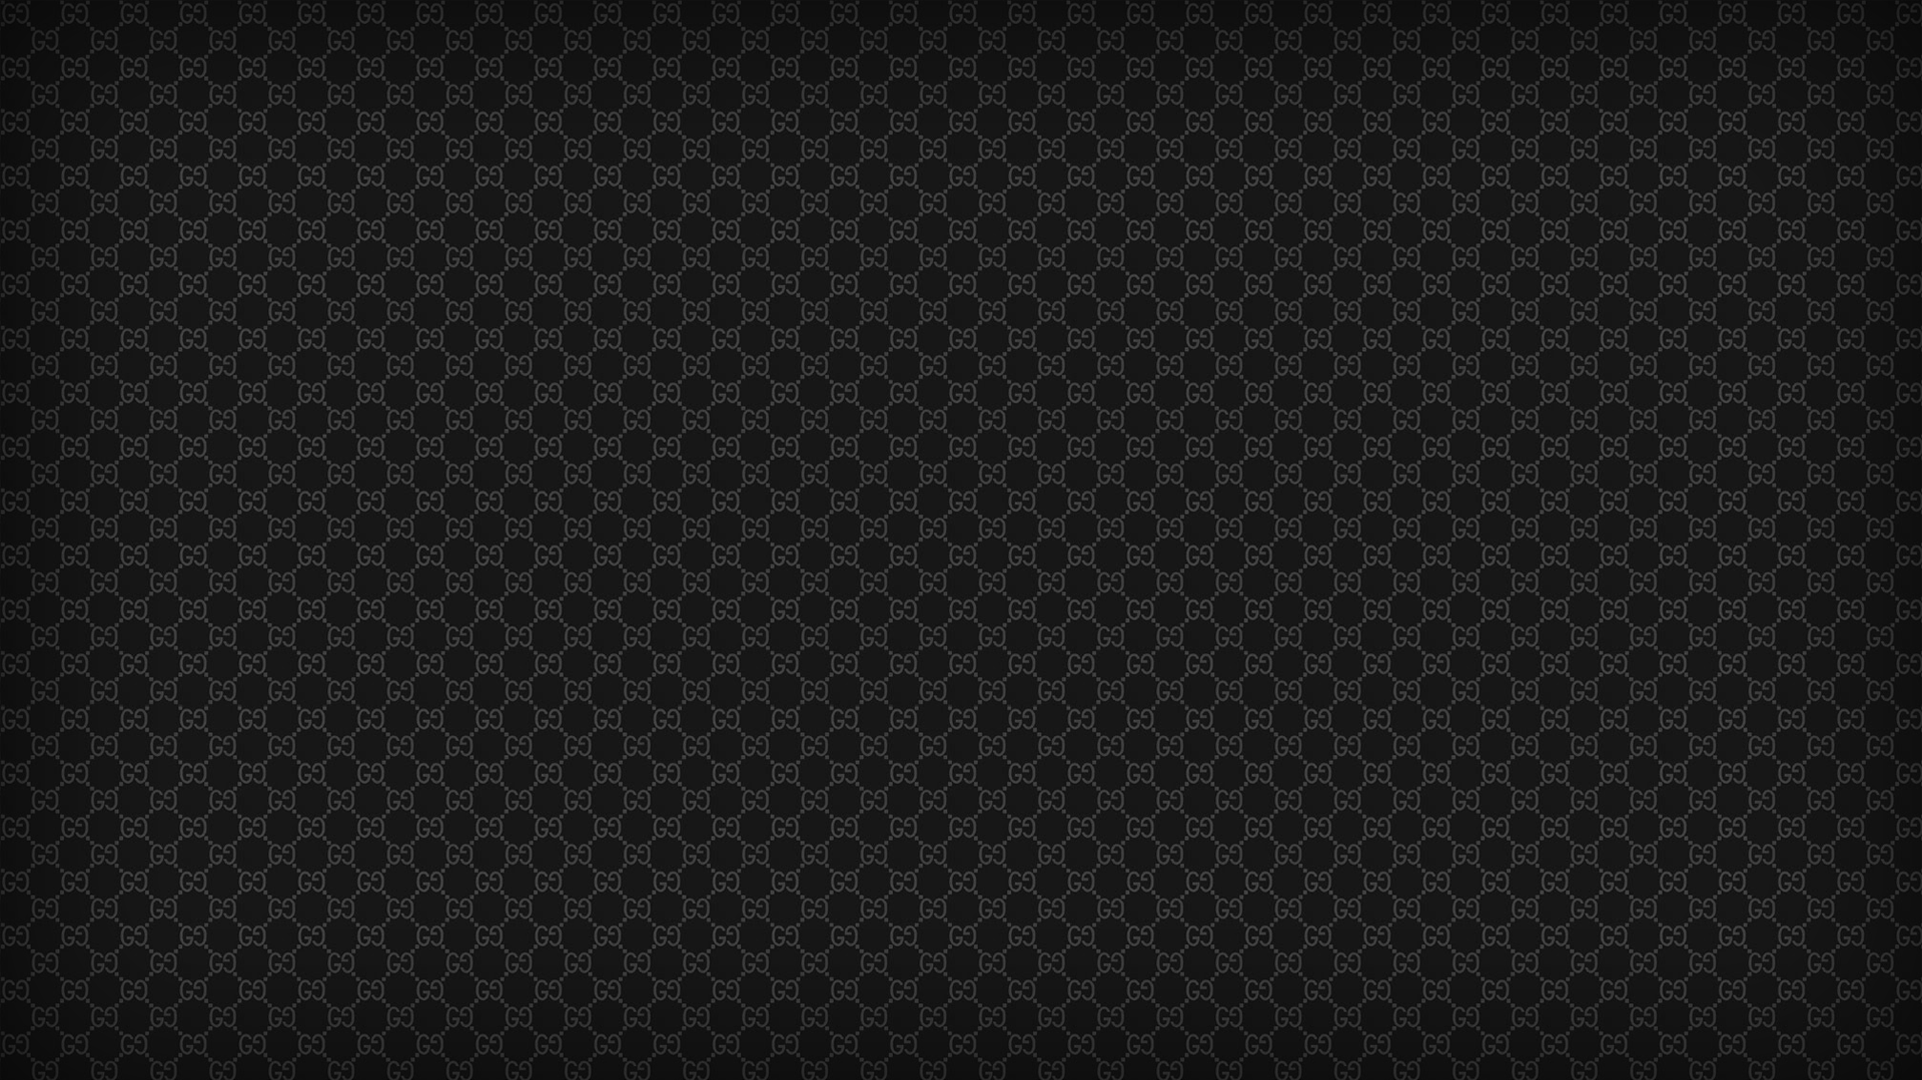 Background Downlad Gucci Wallpapers Hd Black Wallpaper Versace Wallpaper Gucci